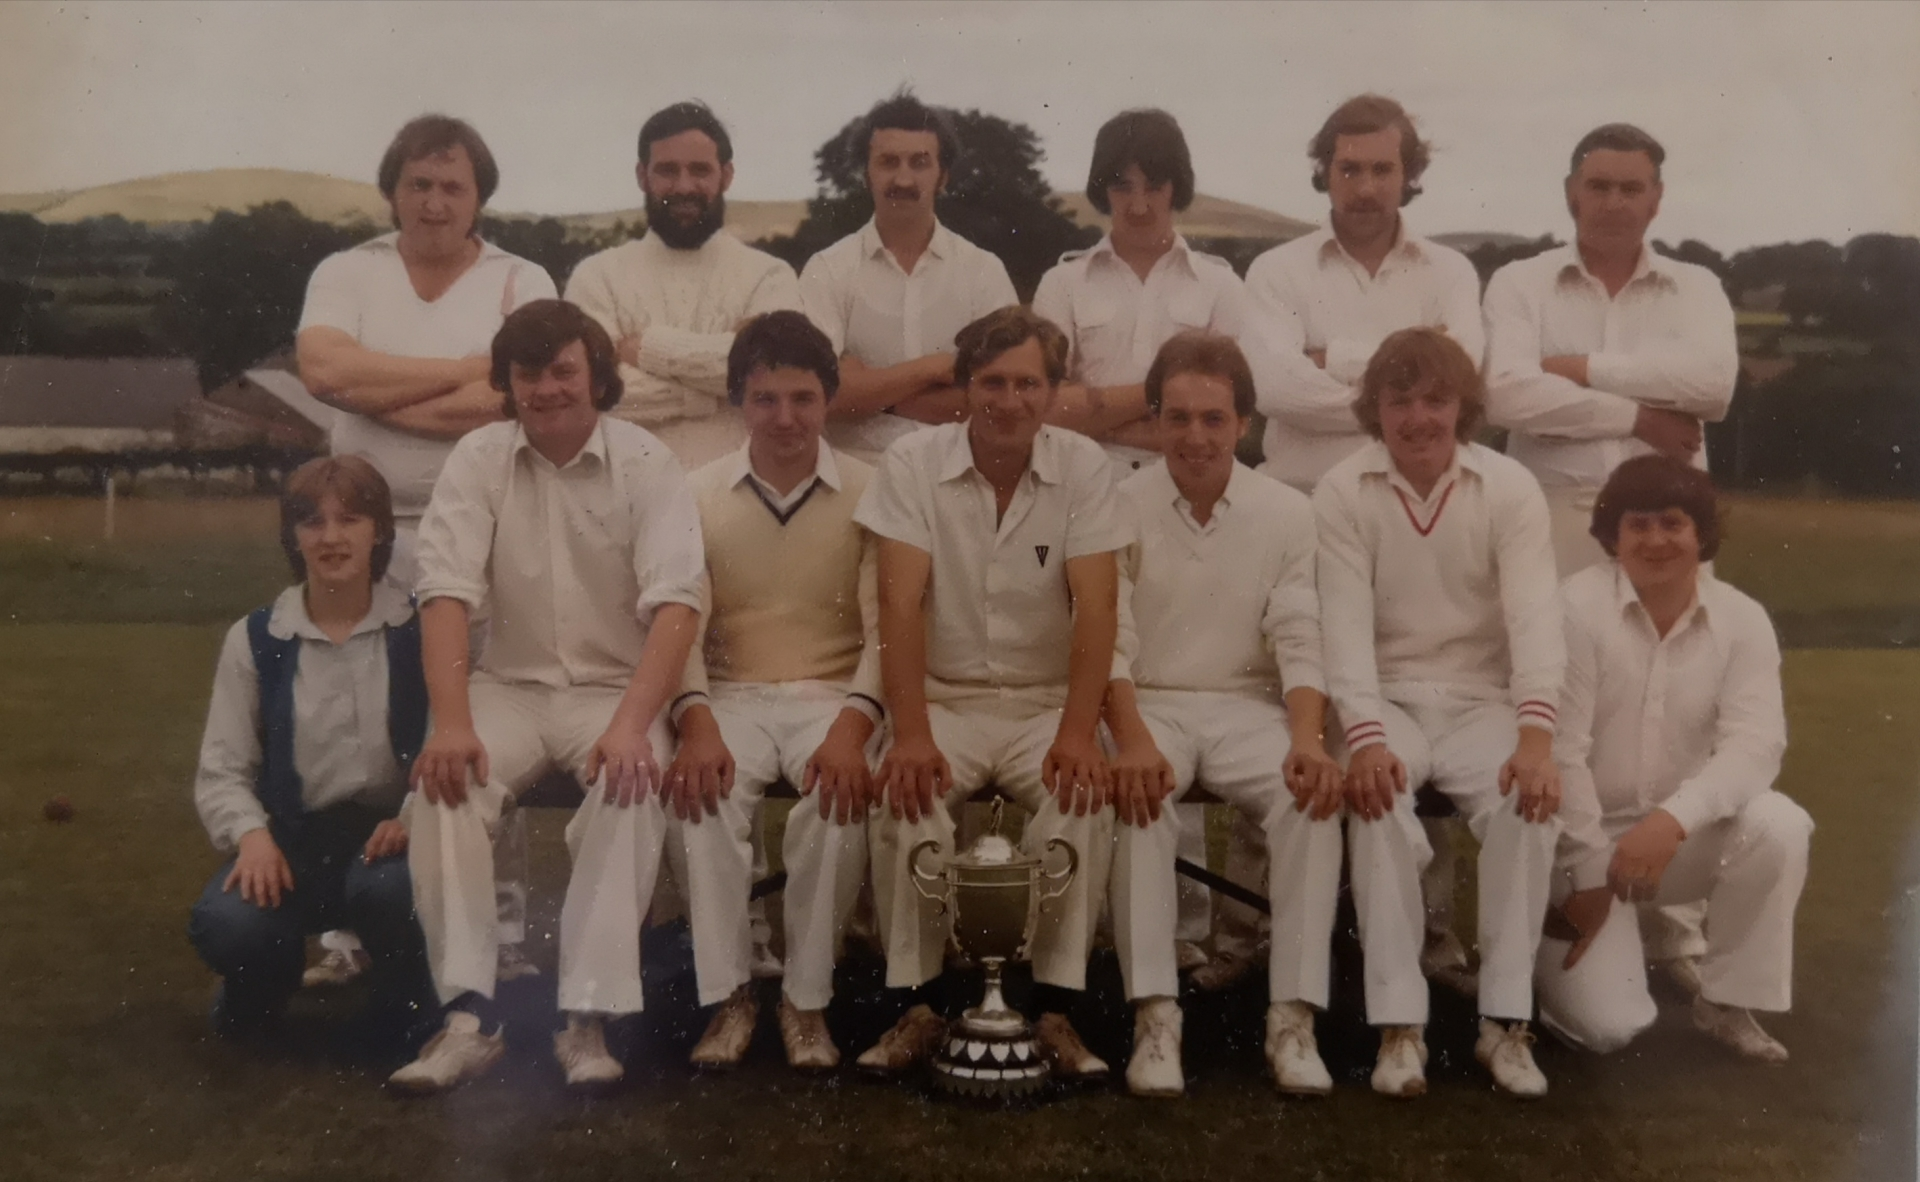 Jack Knobbs, 2nd from the right in the back row, in the local cricket team.